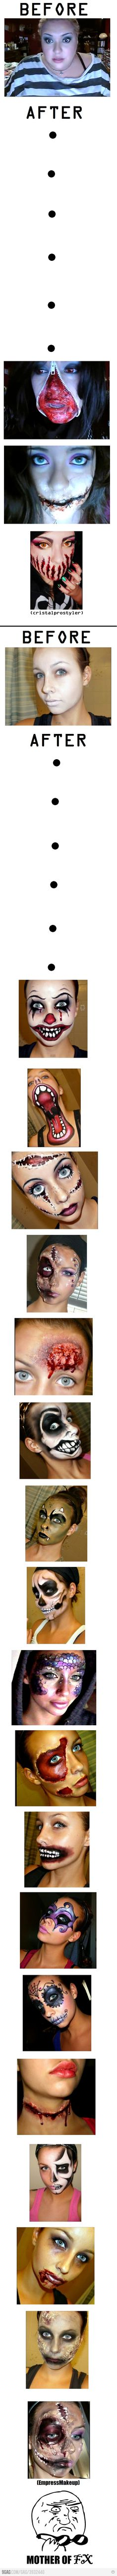 Halloween makeup {i really don't like these super lllloooonnngg posts, but...WOW..}